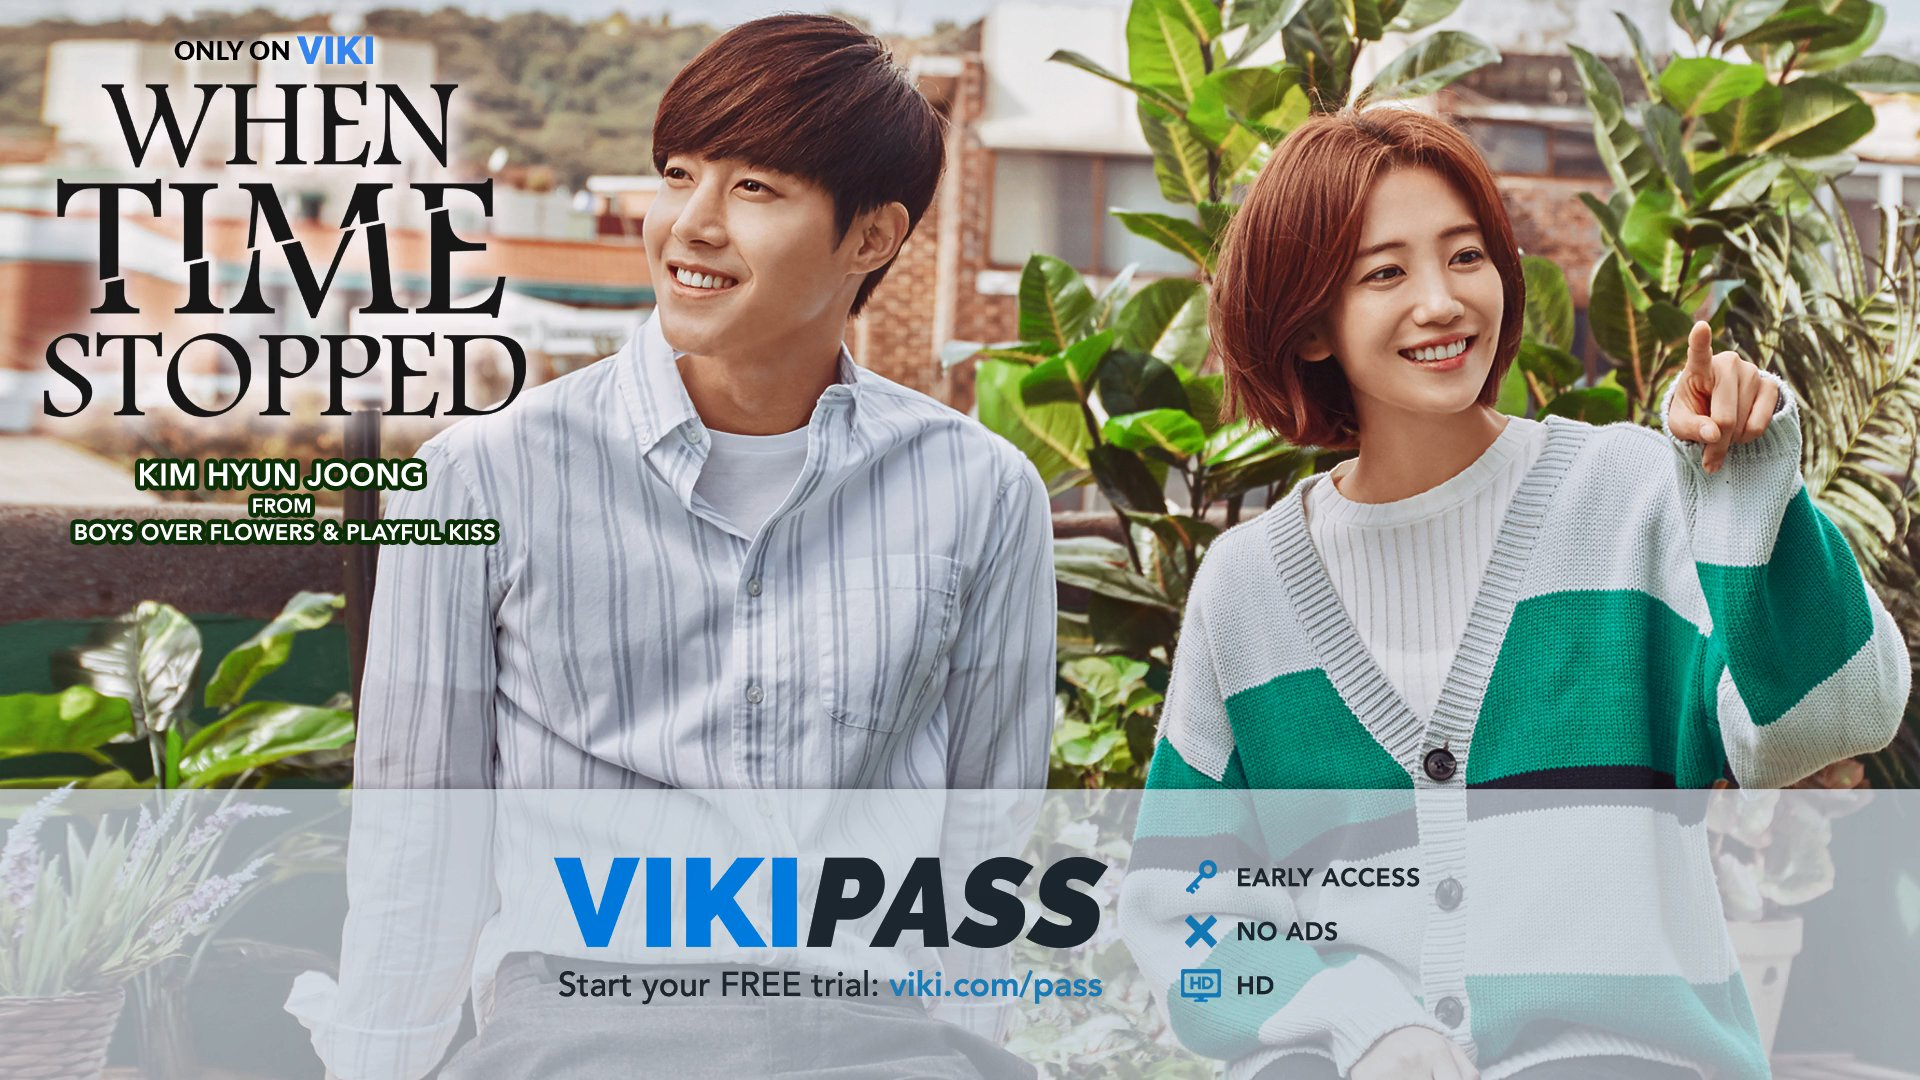 Viki Channel of Drama Cover has changed